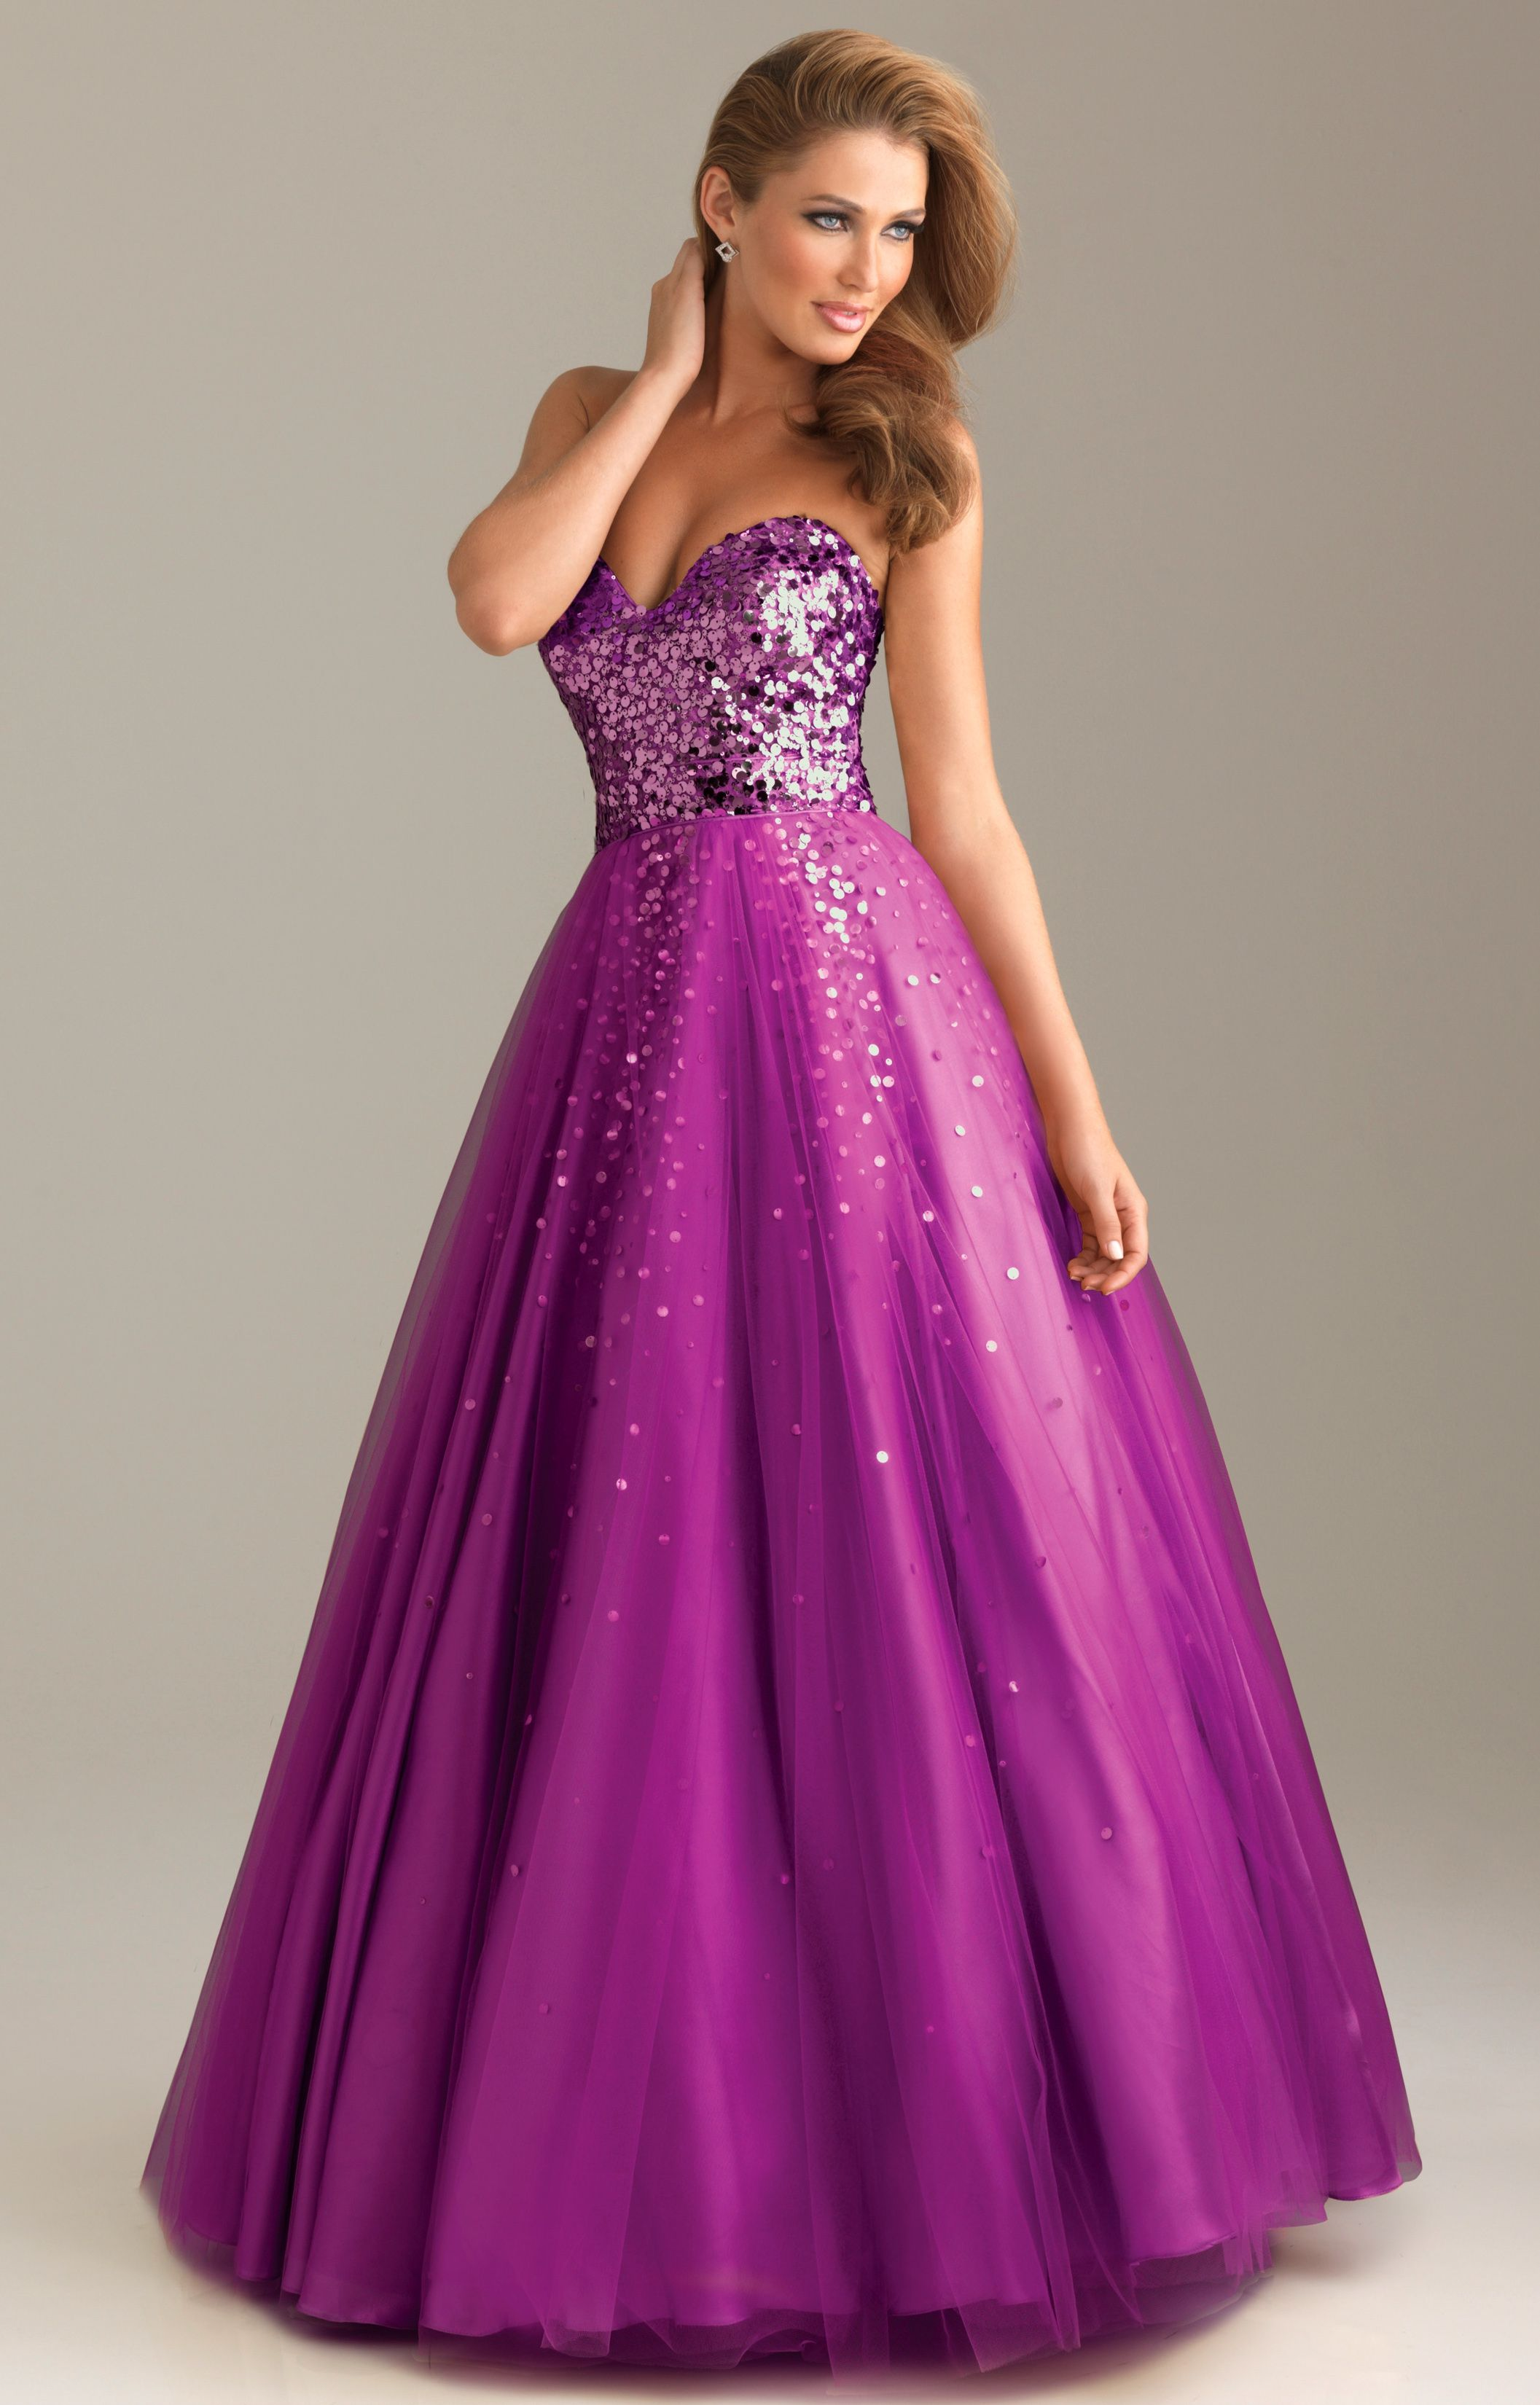 Rissy Roo\'s new prom dresses collection 2013 | Prom dresses 2015 ...